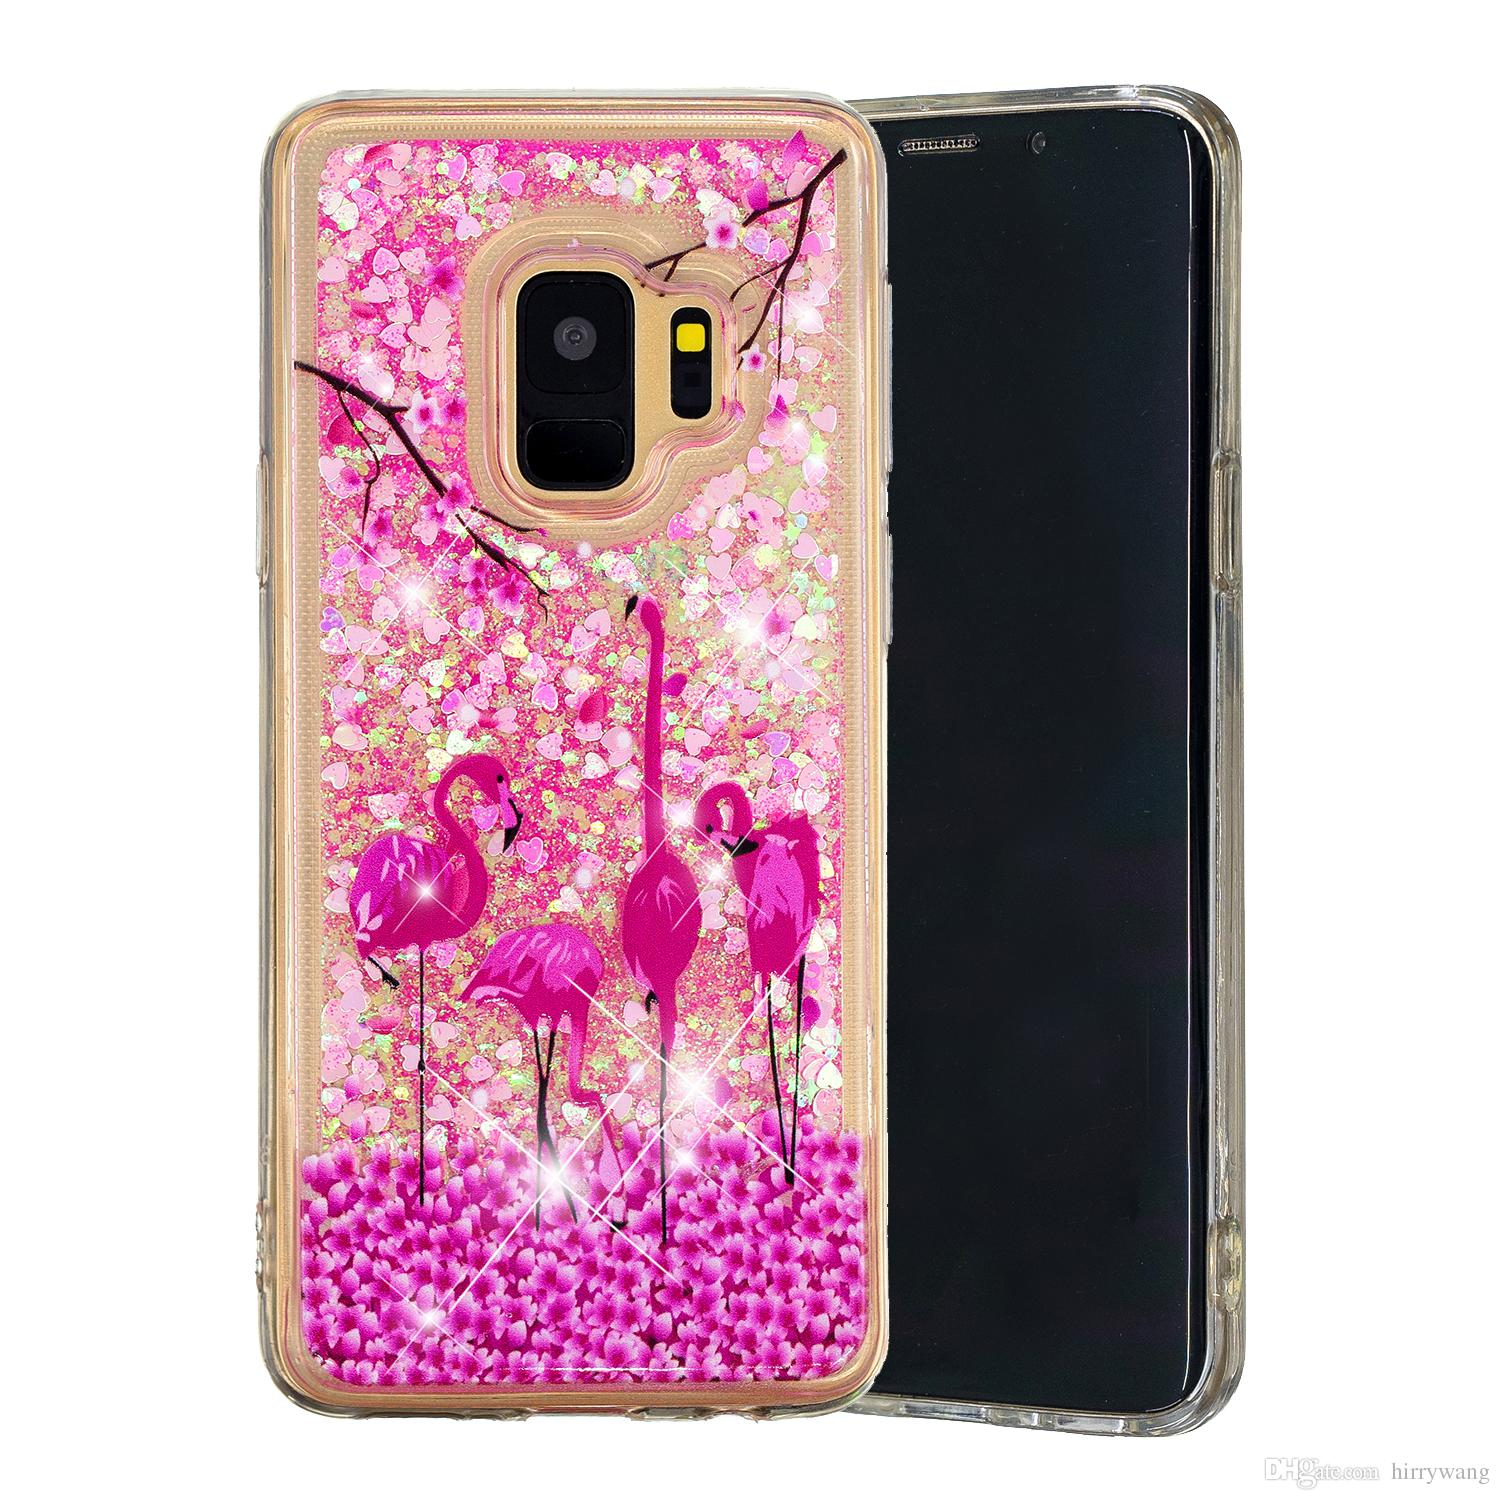 Fashion Glitter Liquid Water Quicksand Phone Case For Samsung Note 9 S9  Plus A6 Plus 2018 Floating Flowing Sparkle Shinny Bling Cover Leather Cell  Phone ... d7832bbb5